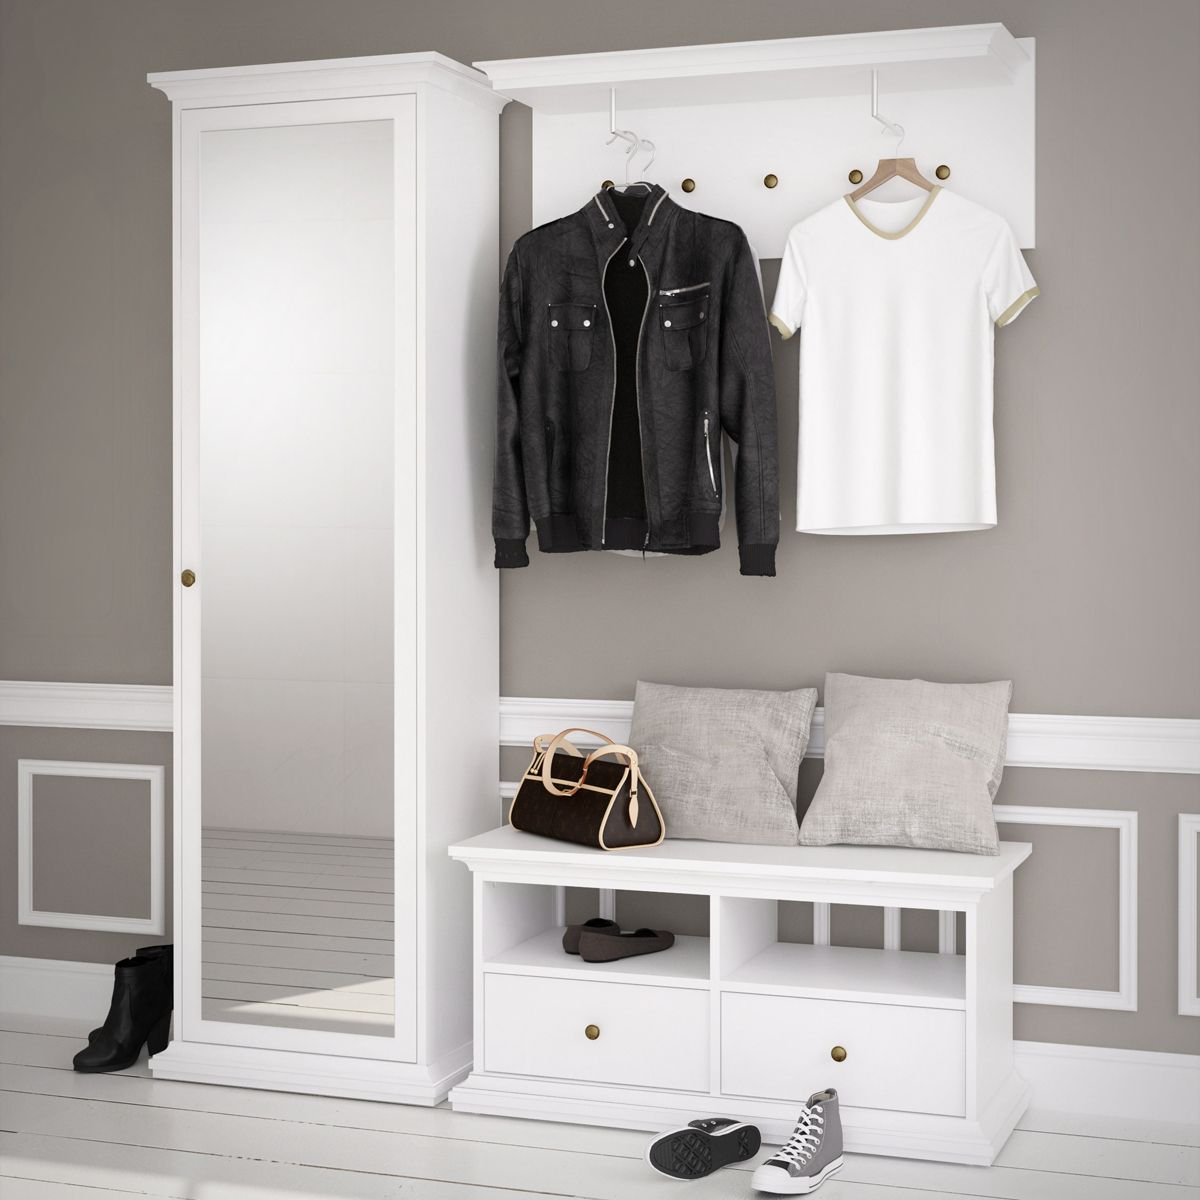 garderobe paris landhaus wei dielenschrank mit spiegel. Black Bedroom Furniture Sets. Home Design Ideas